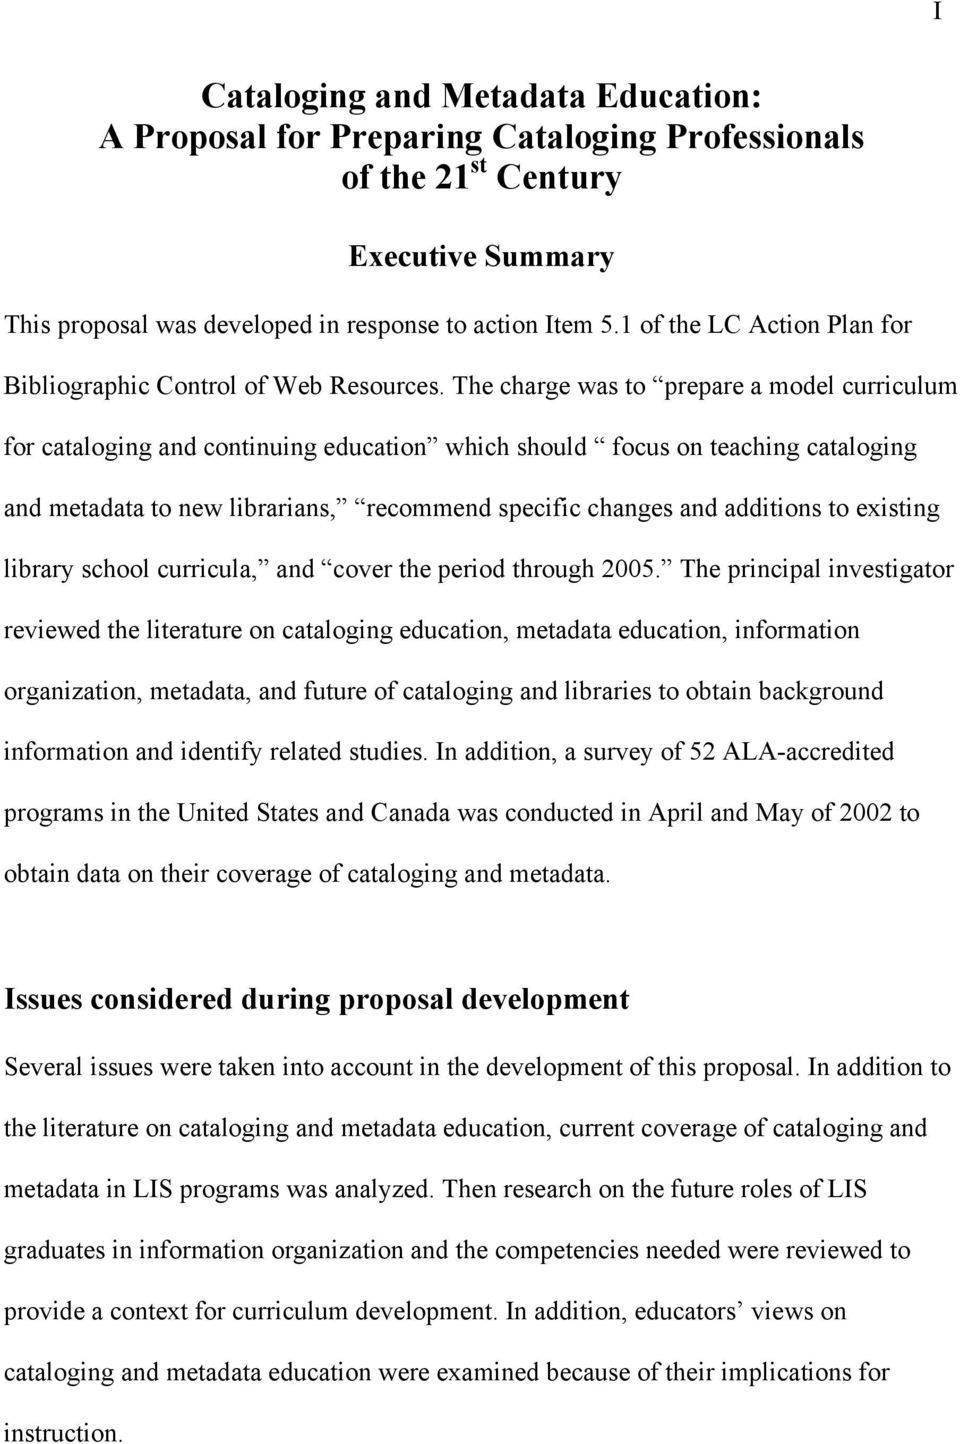 The charge was to prepare a model curriculum for cataloging and continuing education which should focus on teaching cataloging and metadata to new librarians, recommend specific changes and additions